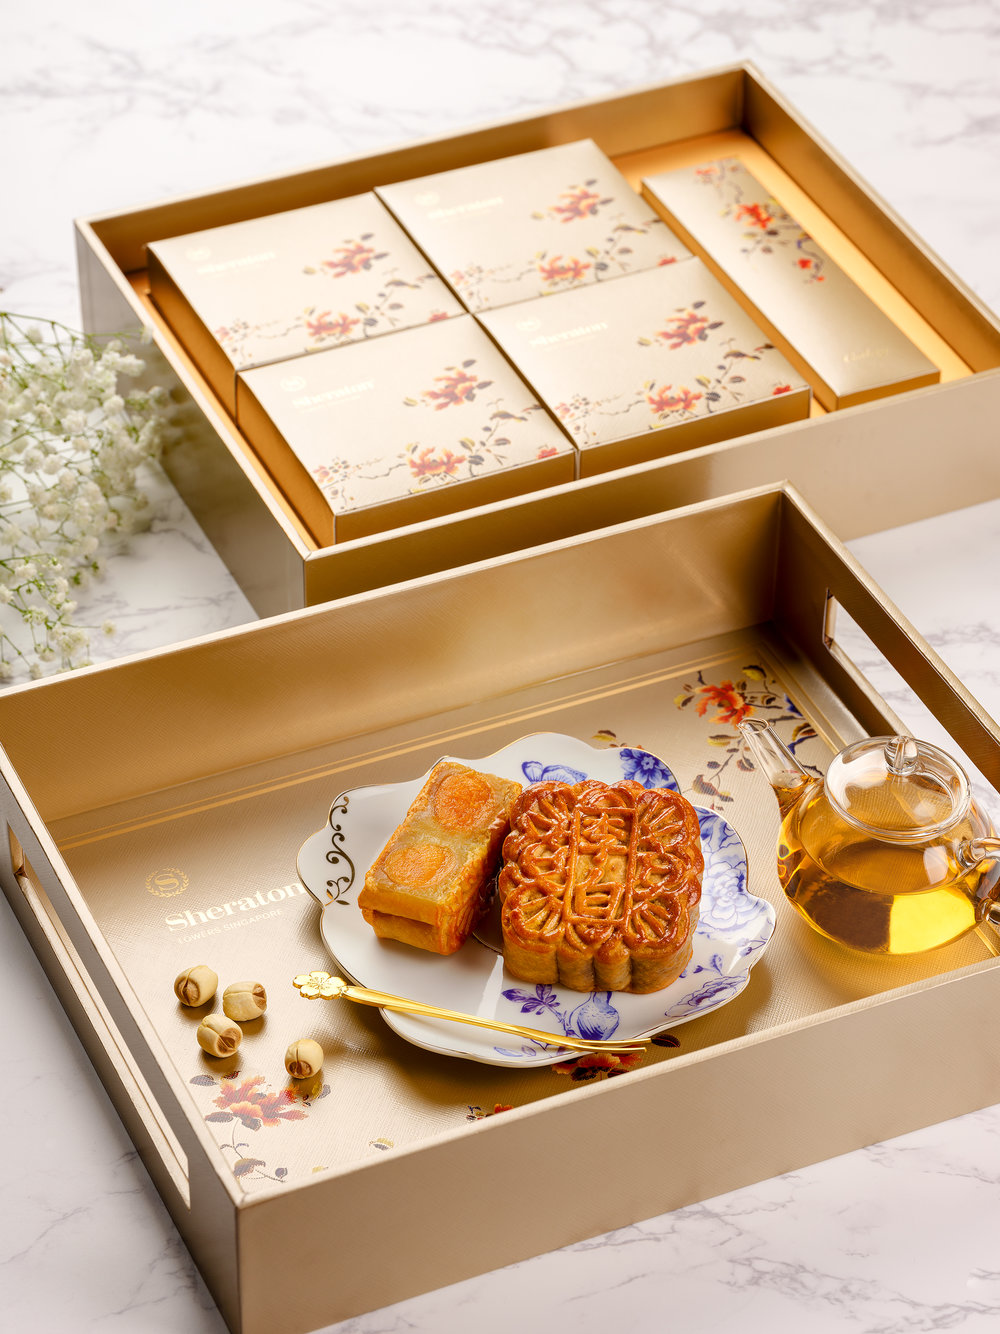 Sheraton Towers Singapore - Premium Box with White Lotus Seed Paste with Double Egg Yolks Mooncake.jpg